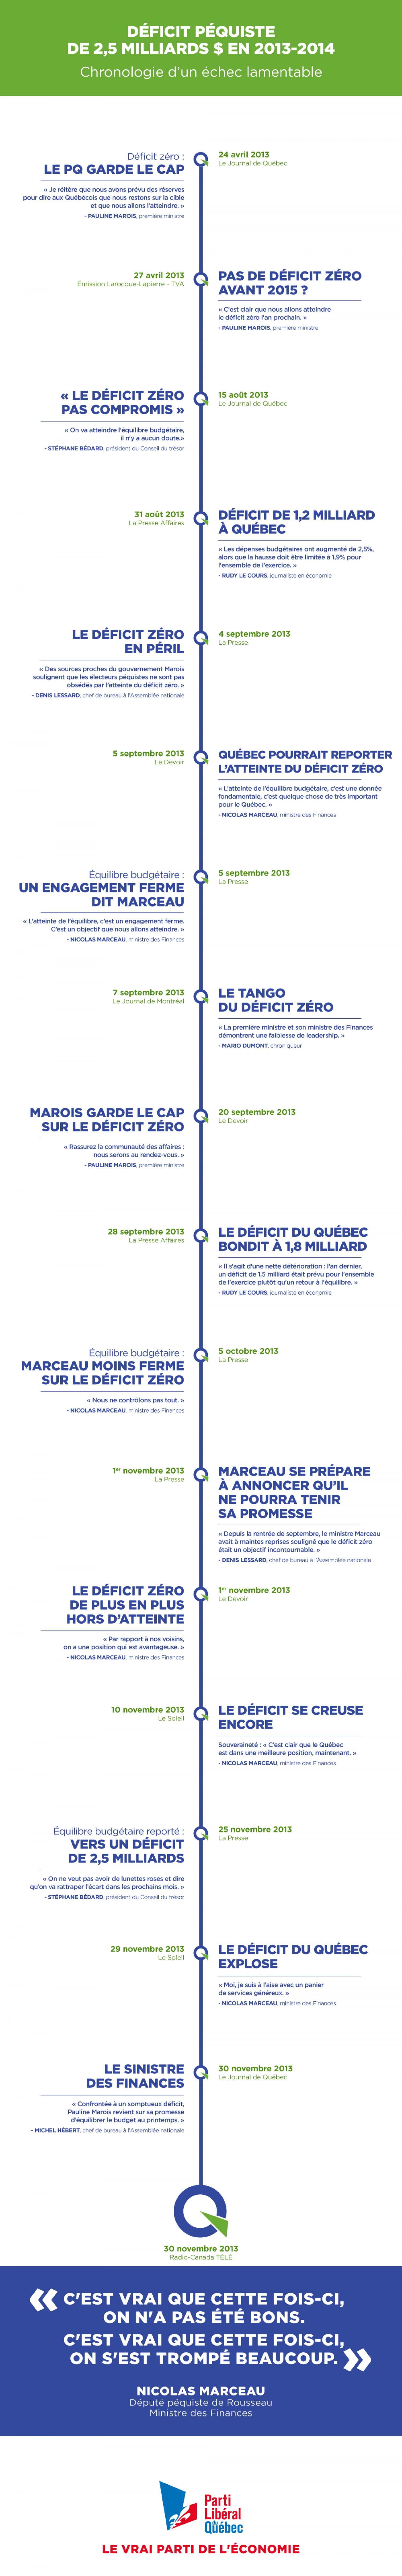 DÉFICIT PÉQUISTE DE 2,5 MILLIARDS $ EN 2013-2014 Infographic